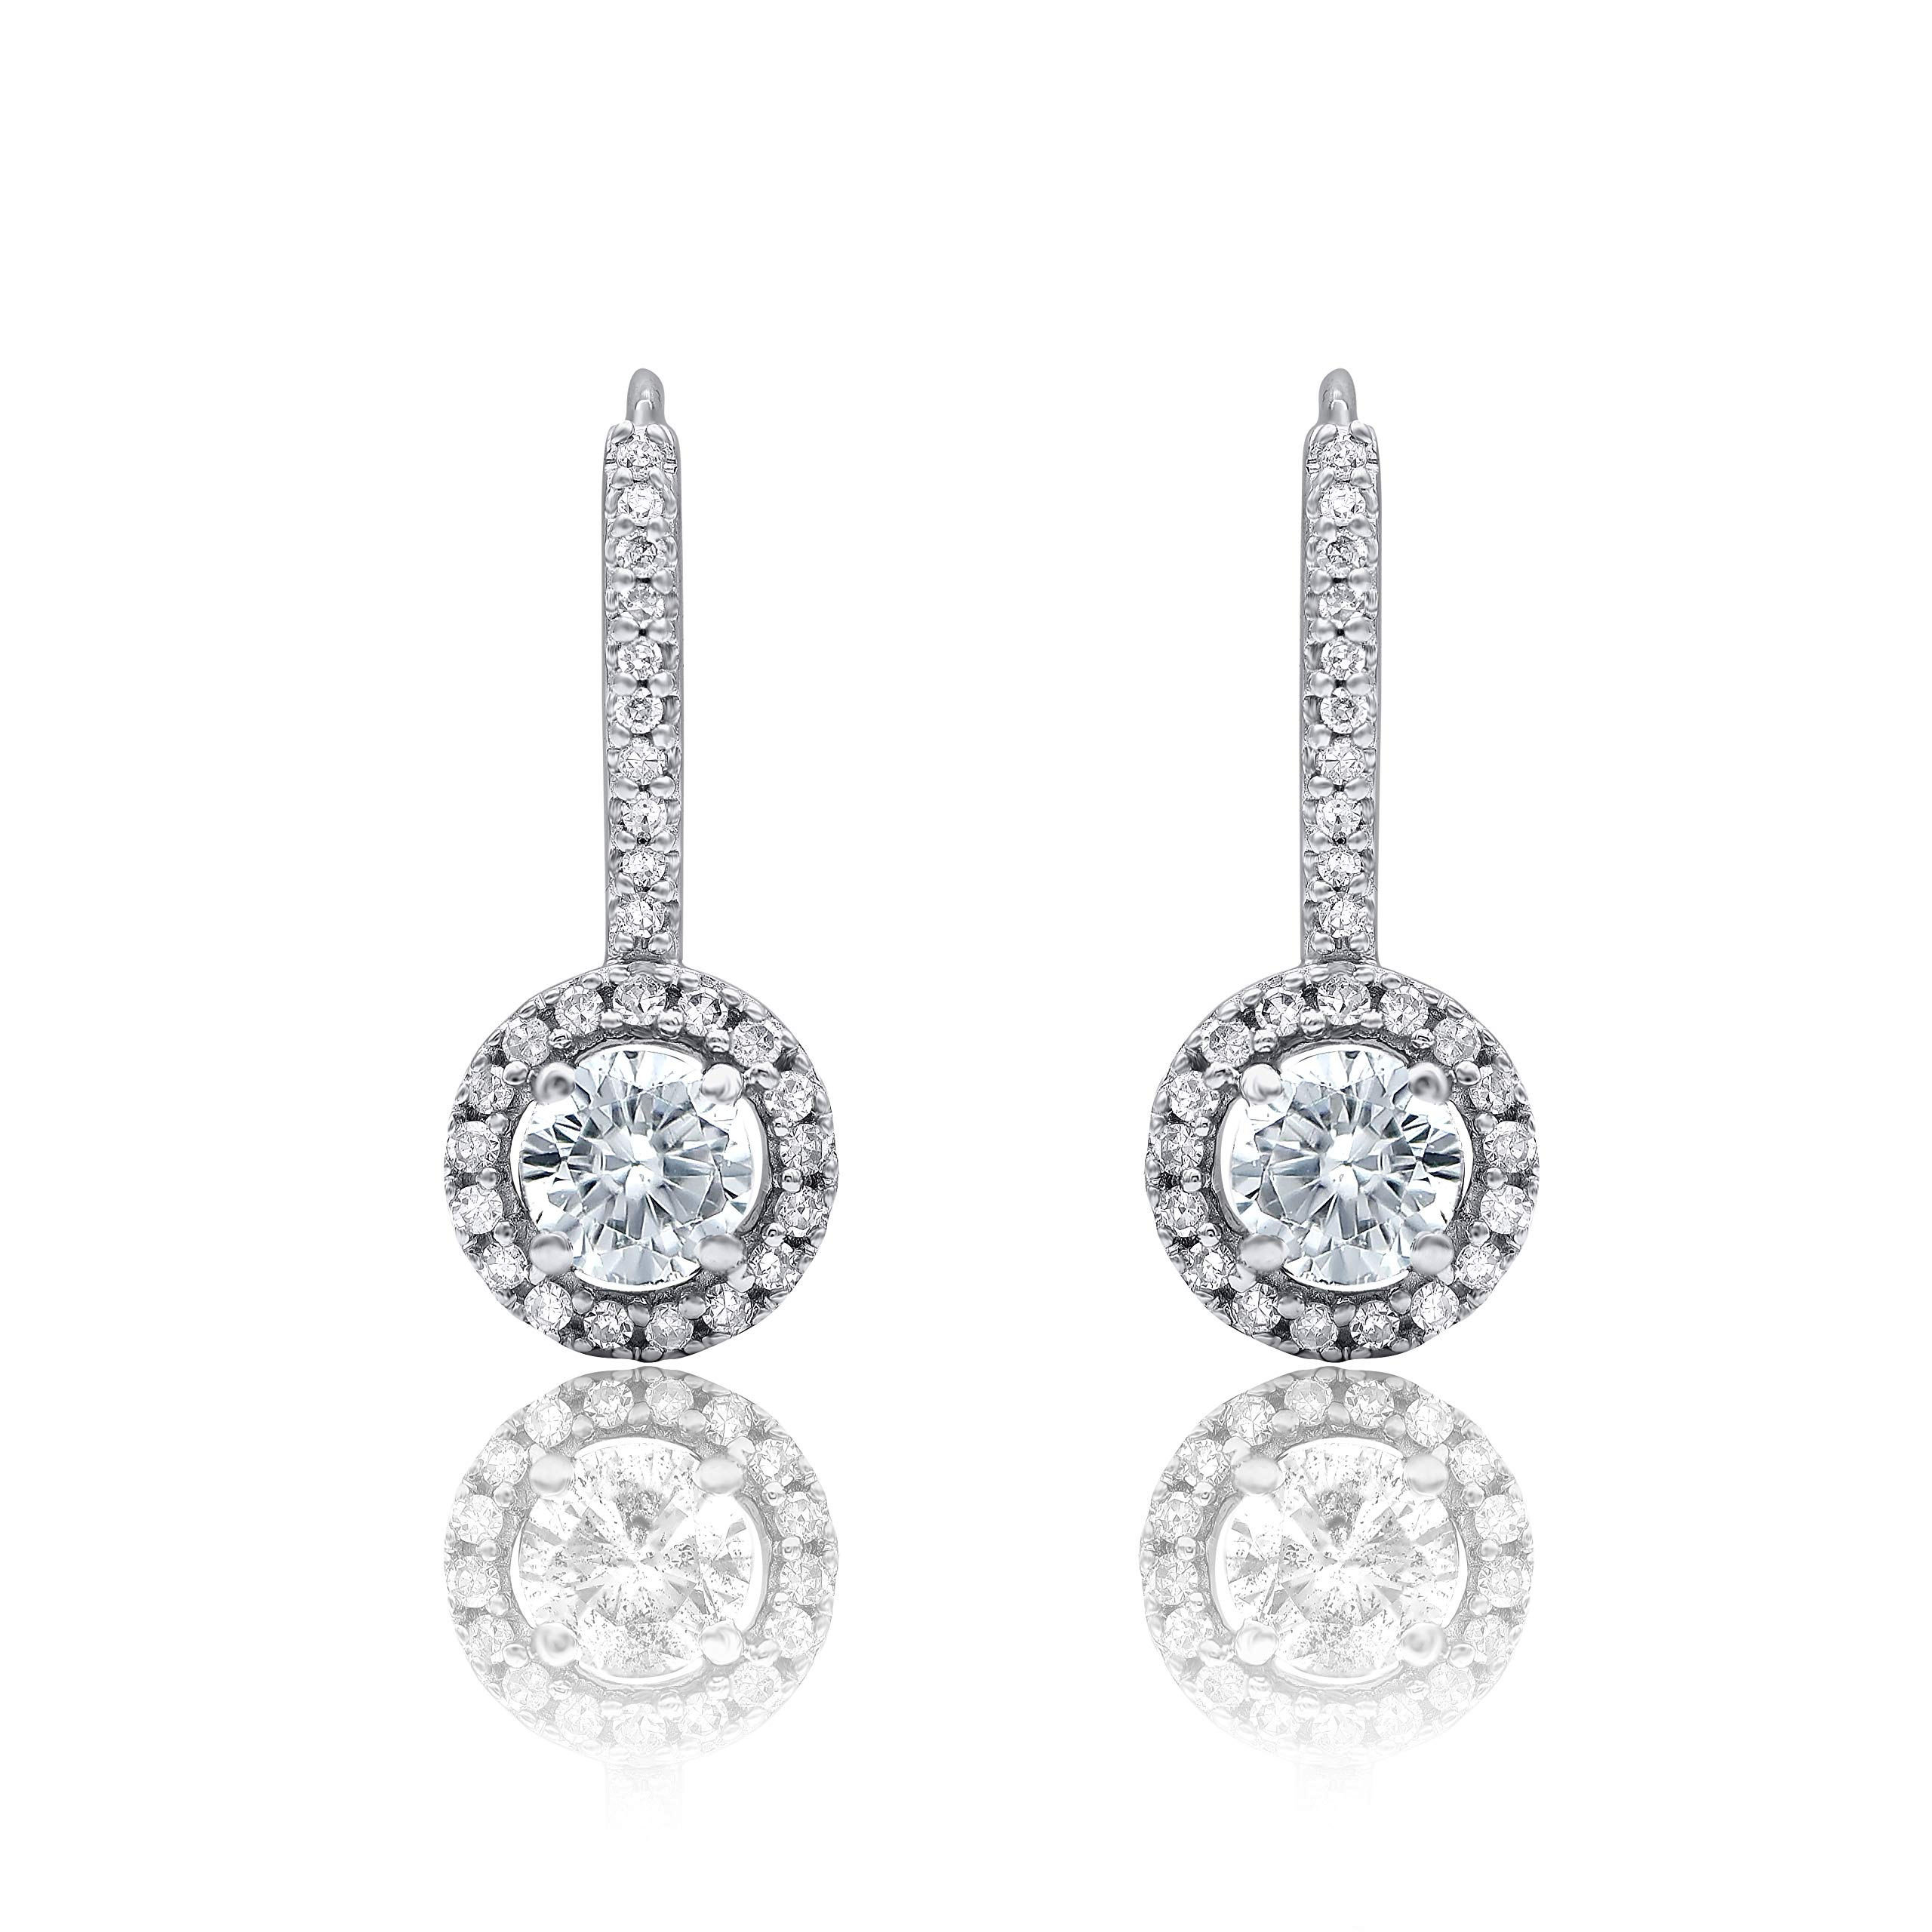 Mothers Day Gifts 3/4 Carat Natural Diamond Earrings 10K White Gold (H-I Color, I2 Clarity) Diamond Huggie Earrings for Women Diamond Jewelry Gifts for Women